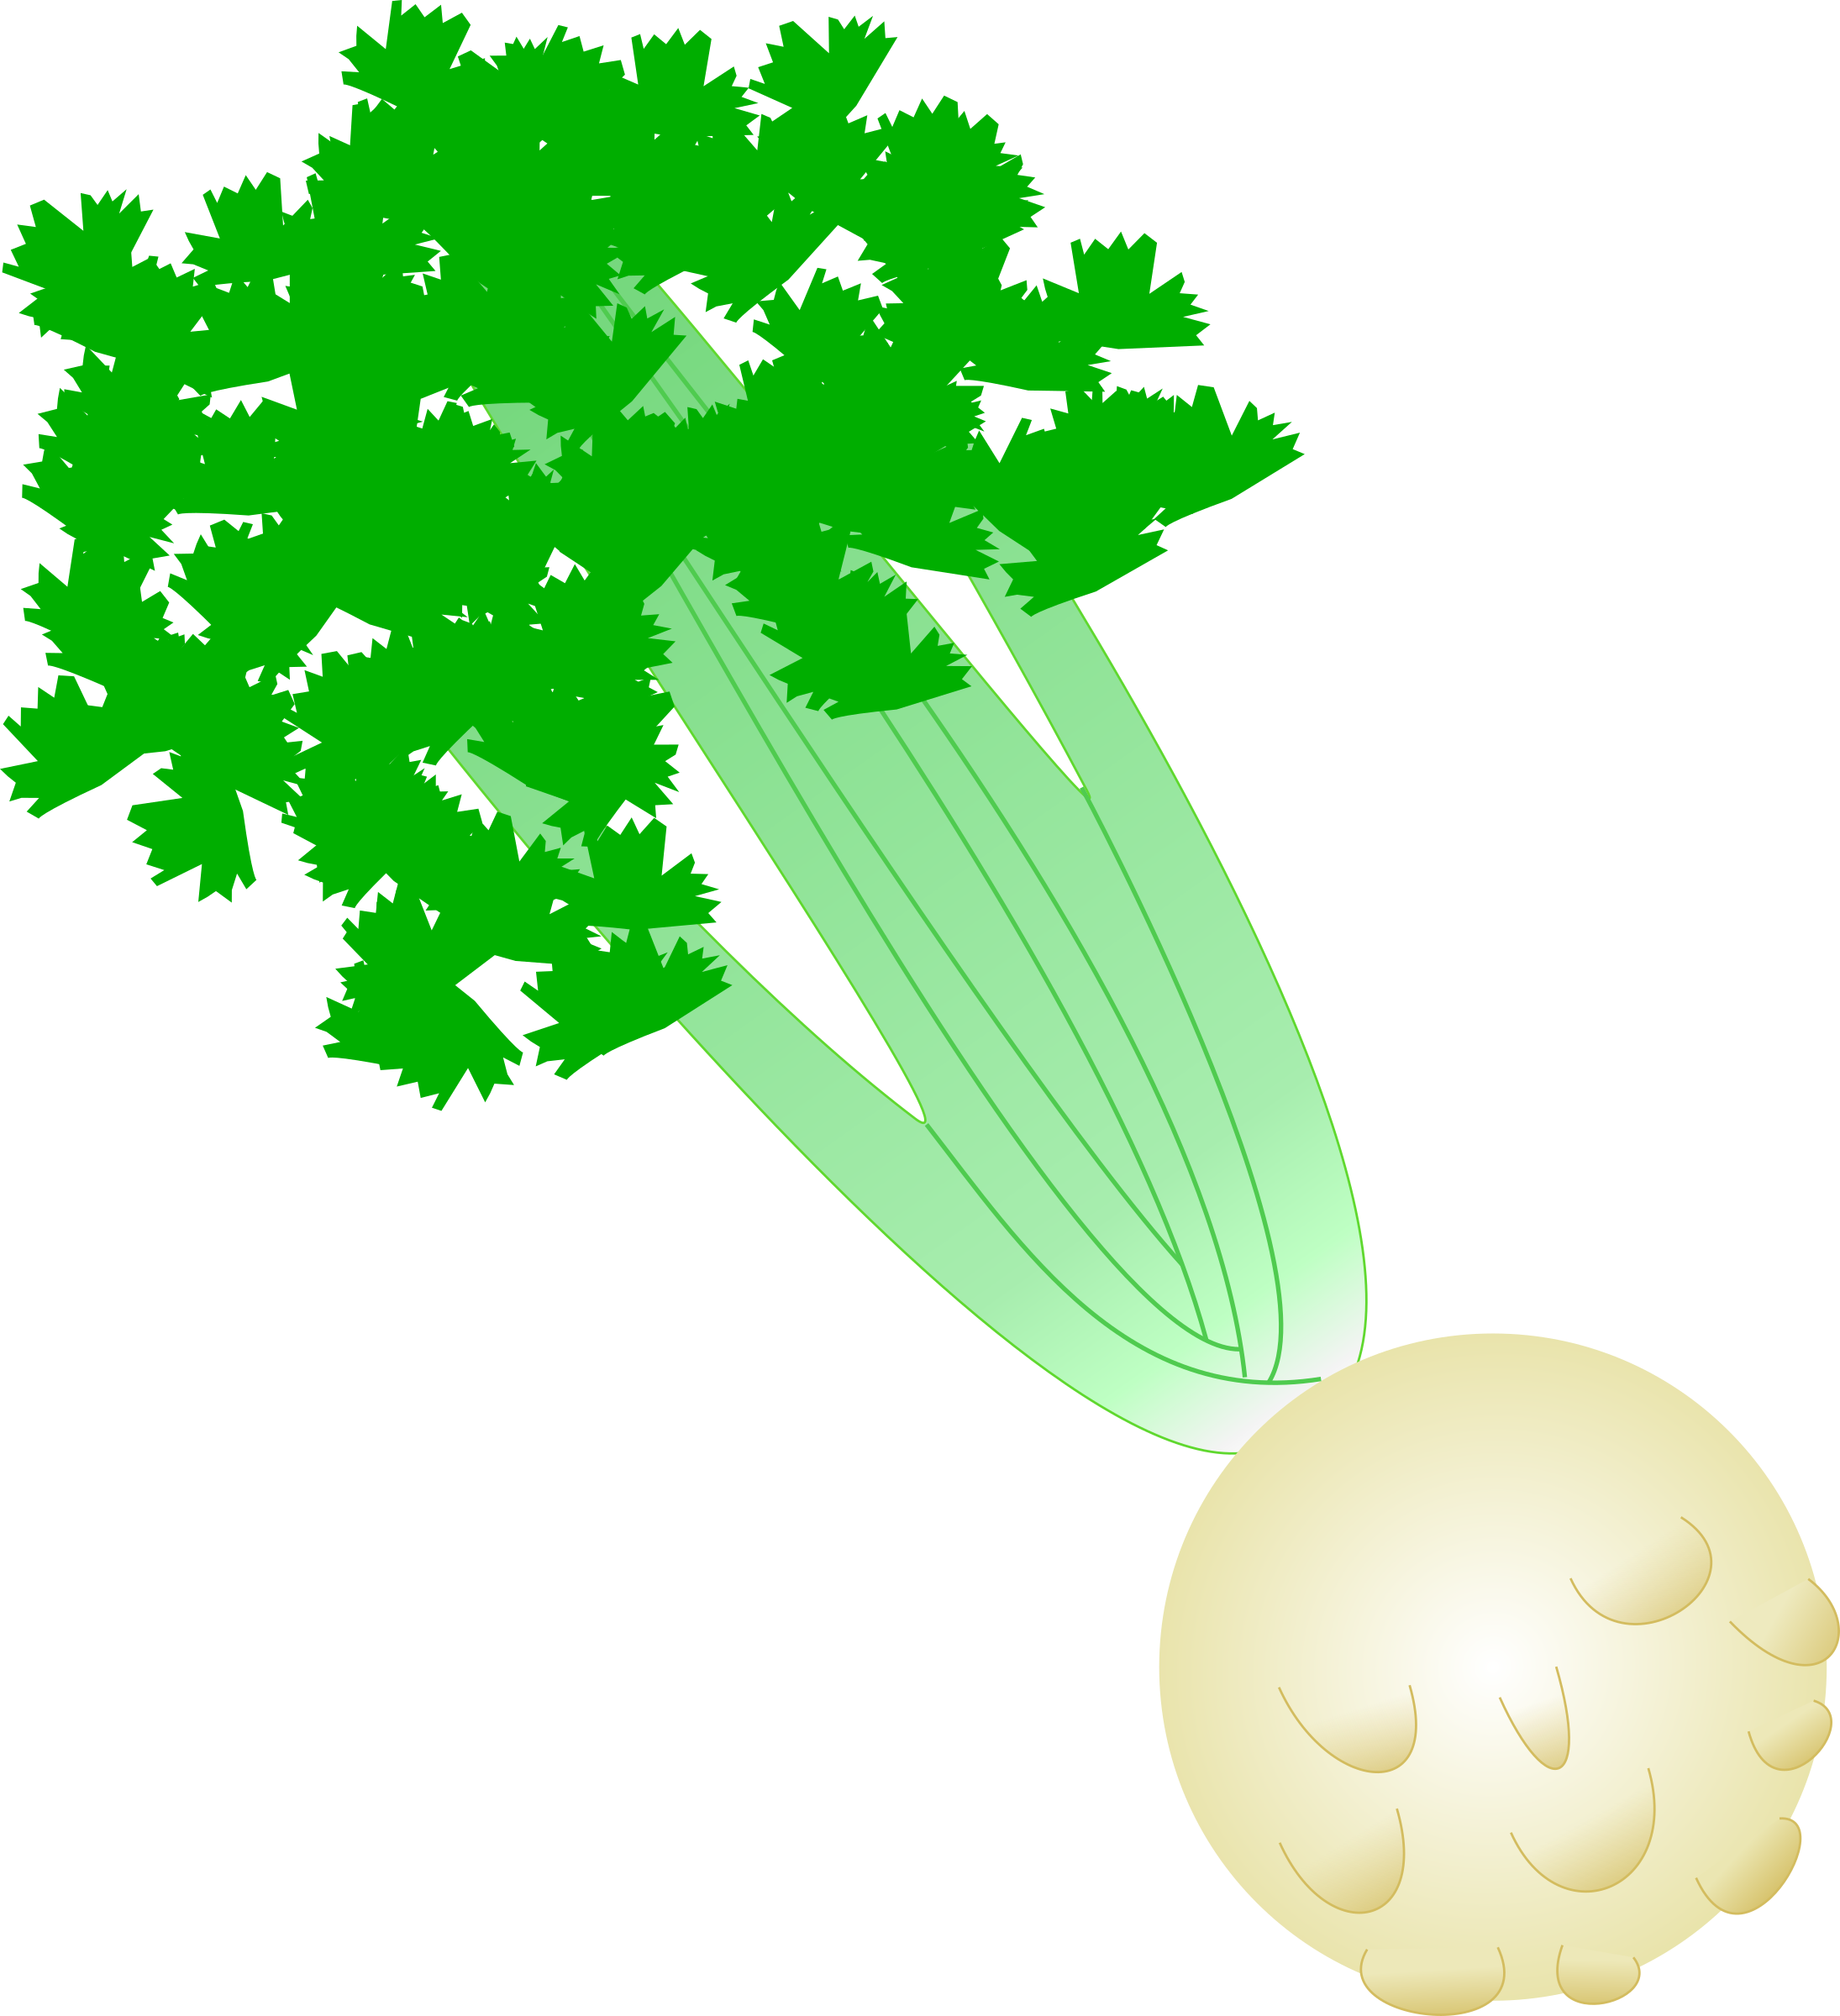 image stock With root big image. Celery clipart.